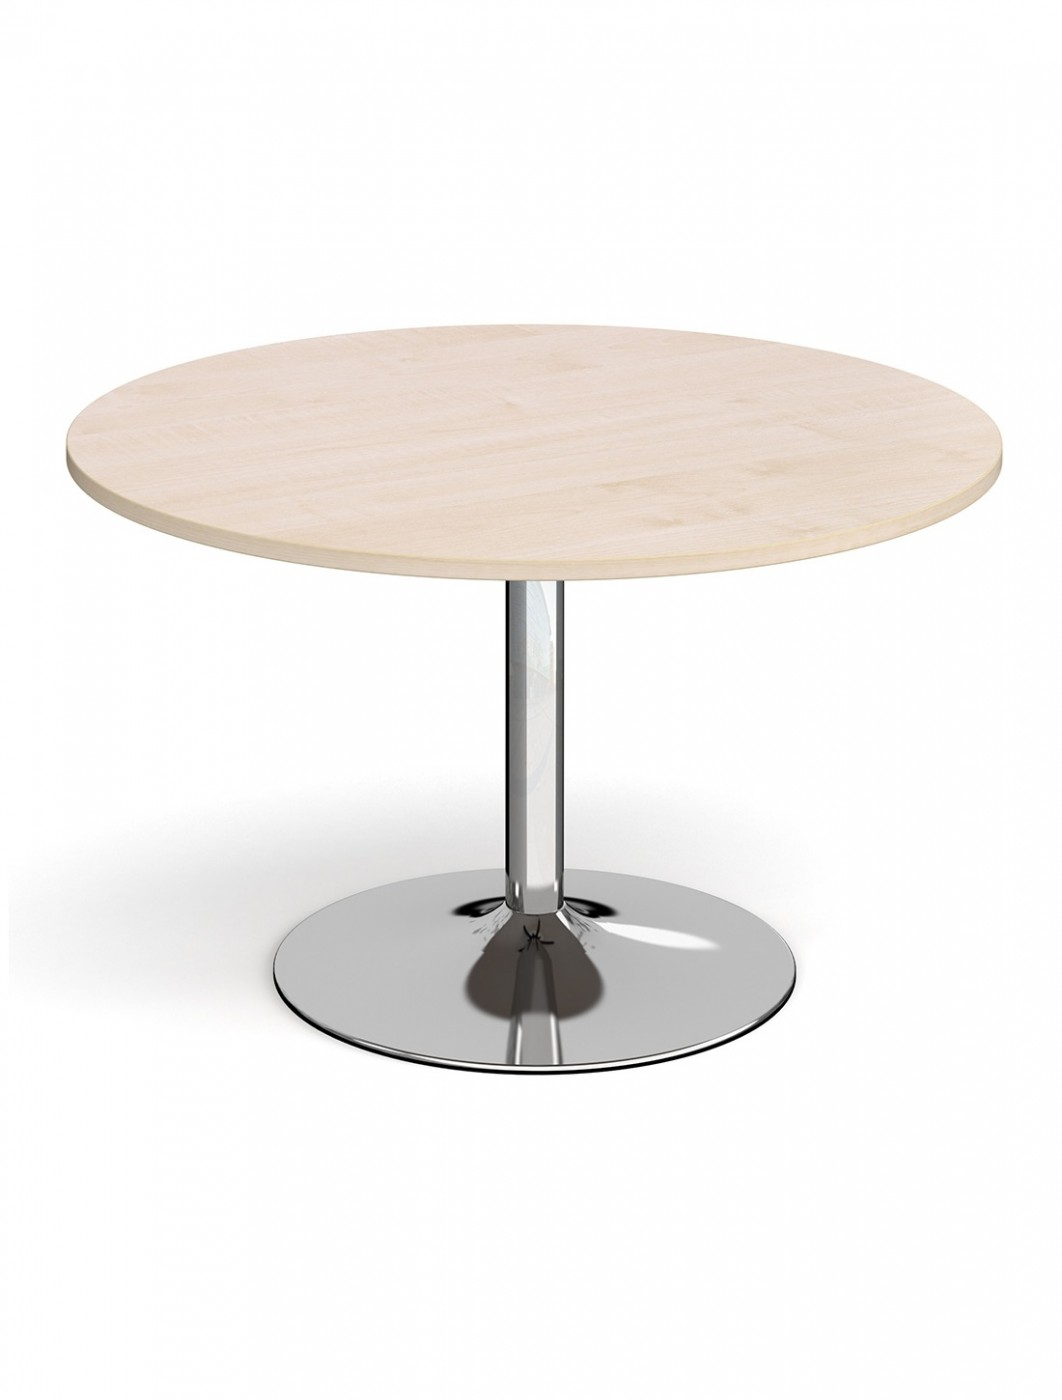 Dams Circular Boardroom Table with Chrome Trumpet Base TB12C-C